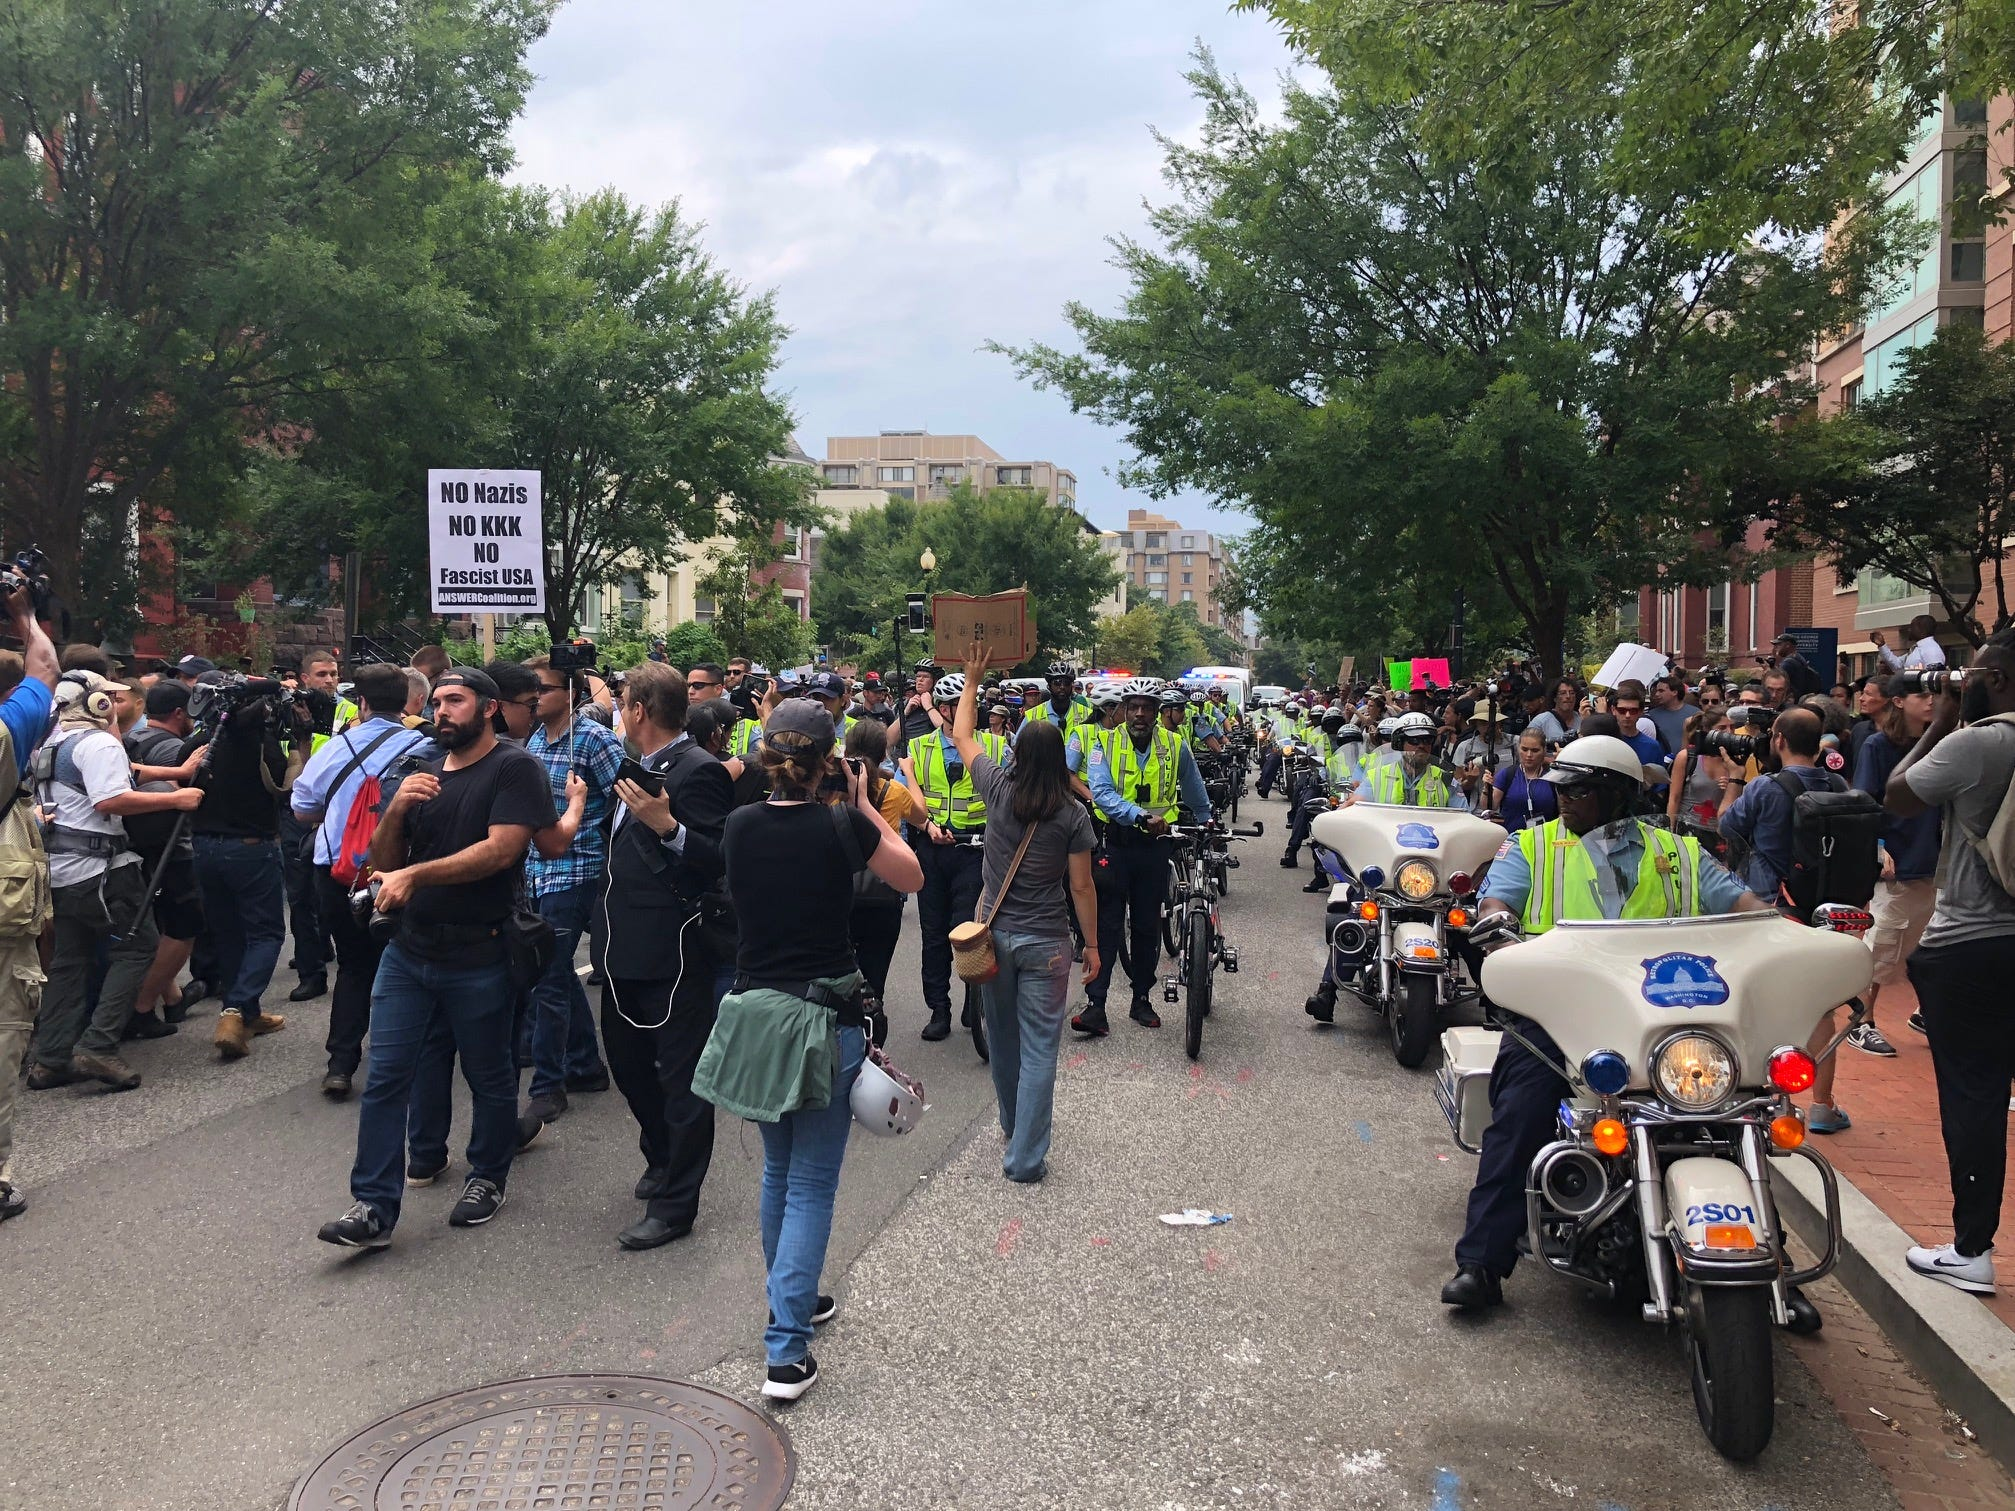 White nationalists are escorted by police with with a tight line of bicycles and motorcycles, screaming at counterprotesters to get back as they walk to Lafayette Park across from the White House. At least one counter protester was spotted hurling rocks at police and the white nationalists.